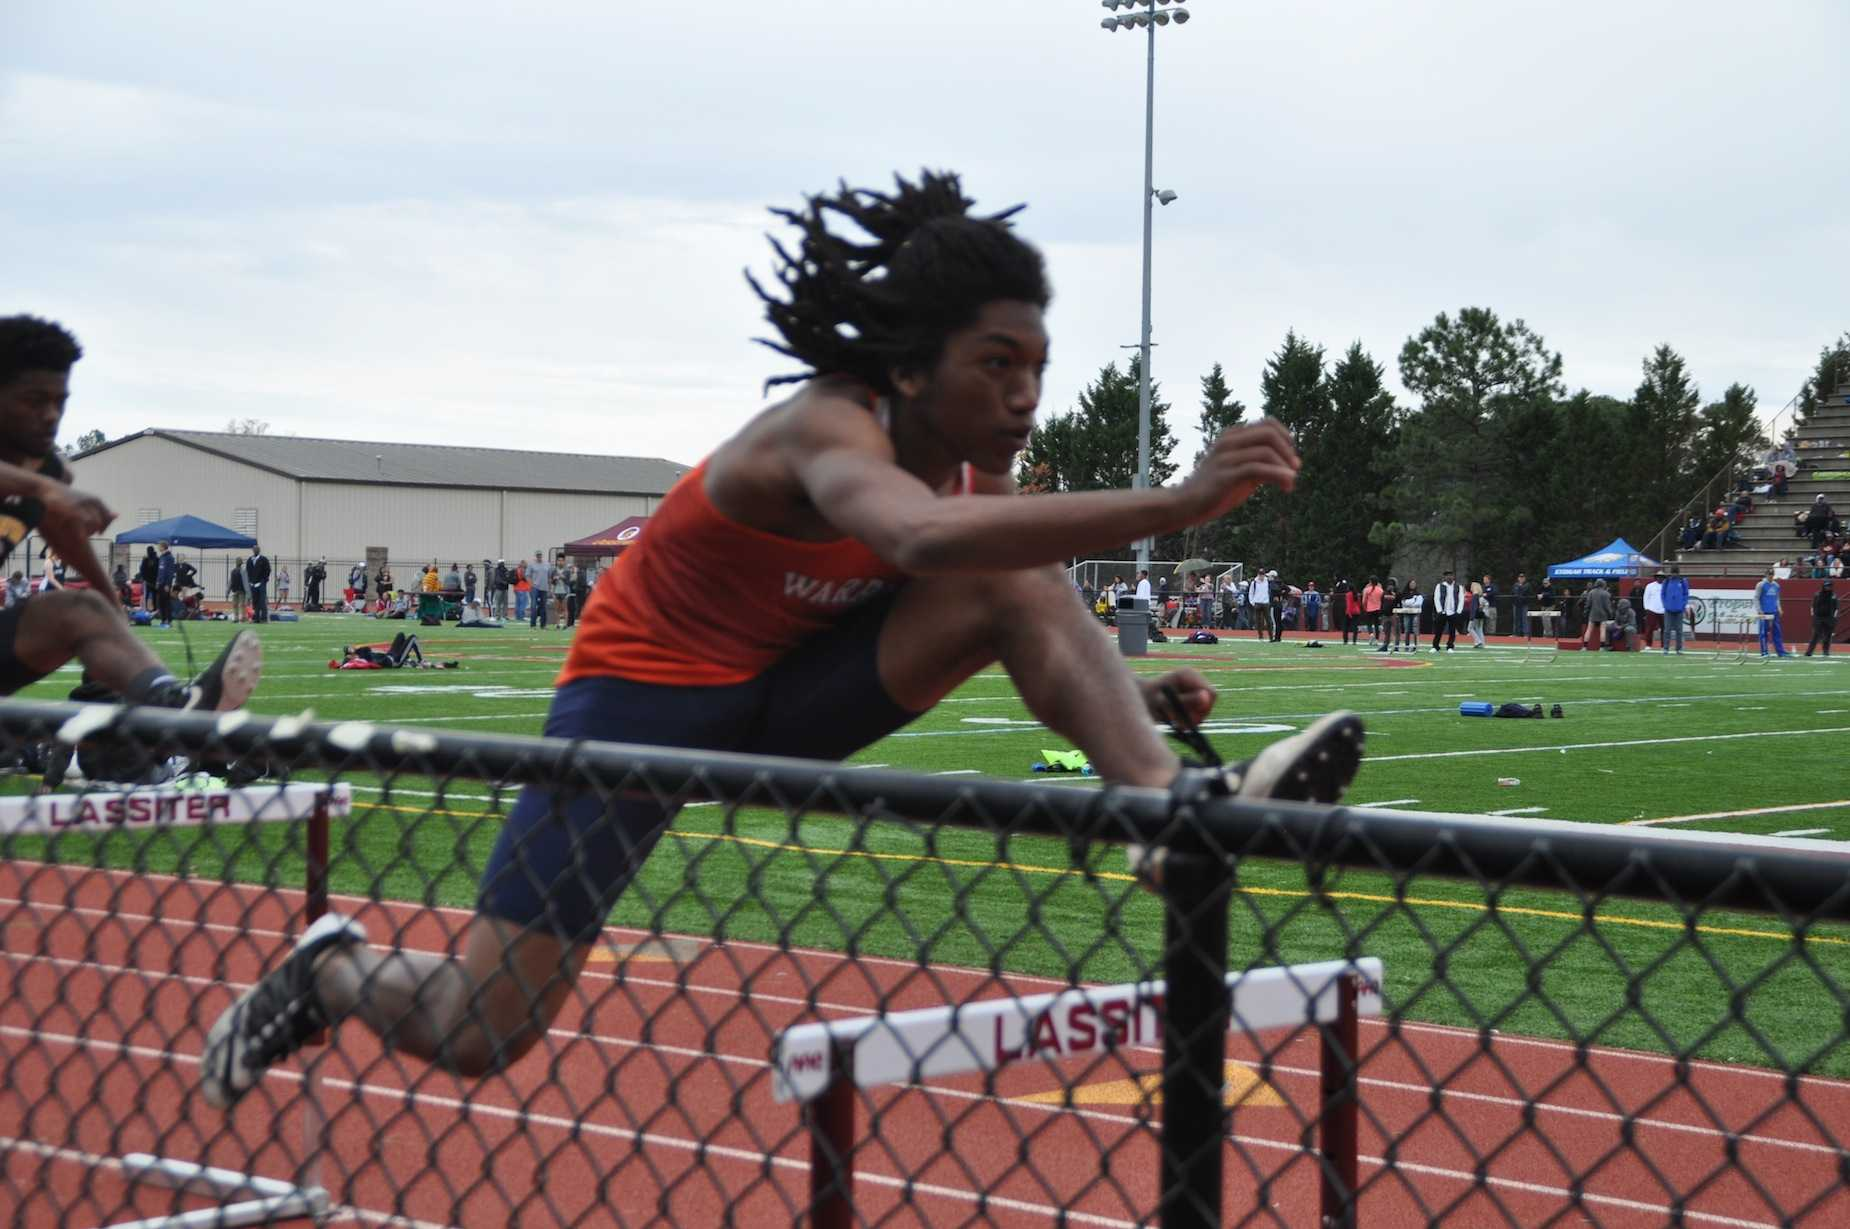 Senior Trenton Johnson looks onward with determination as he leaps over his final hurdle.